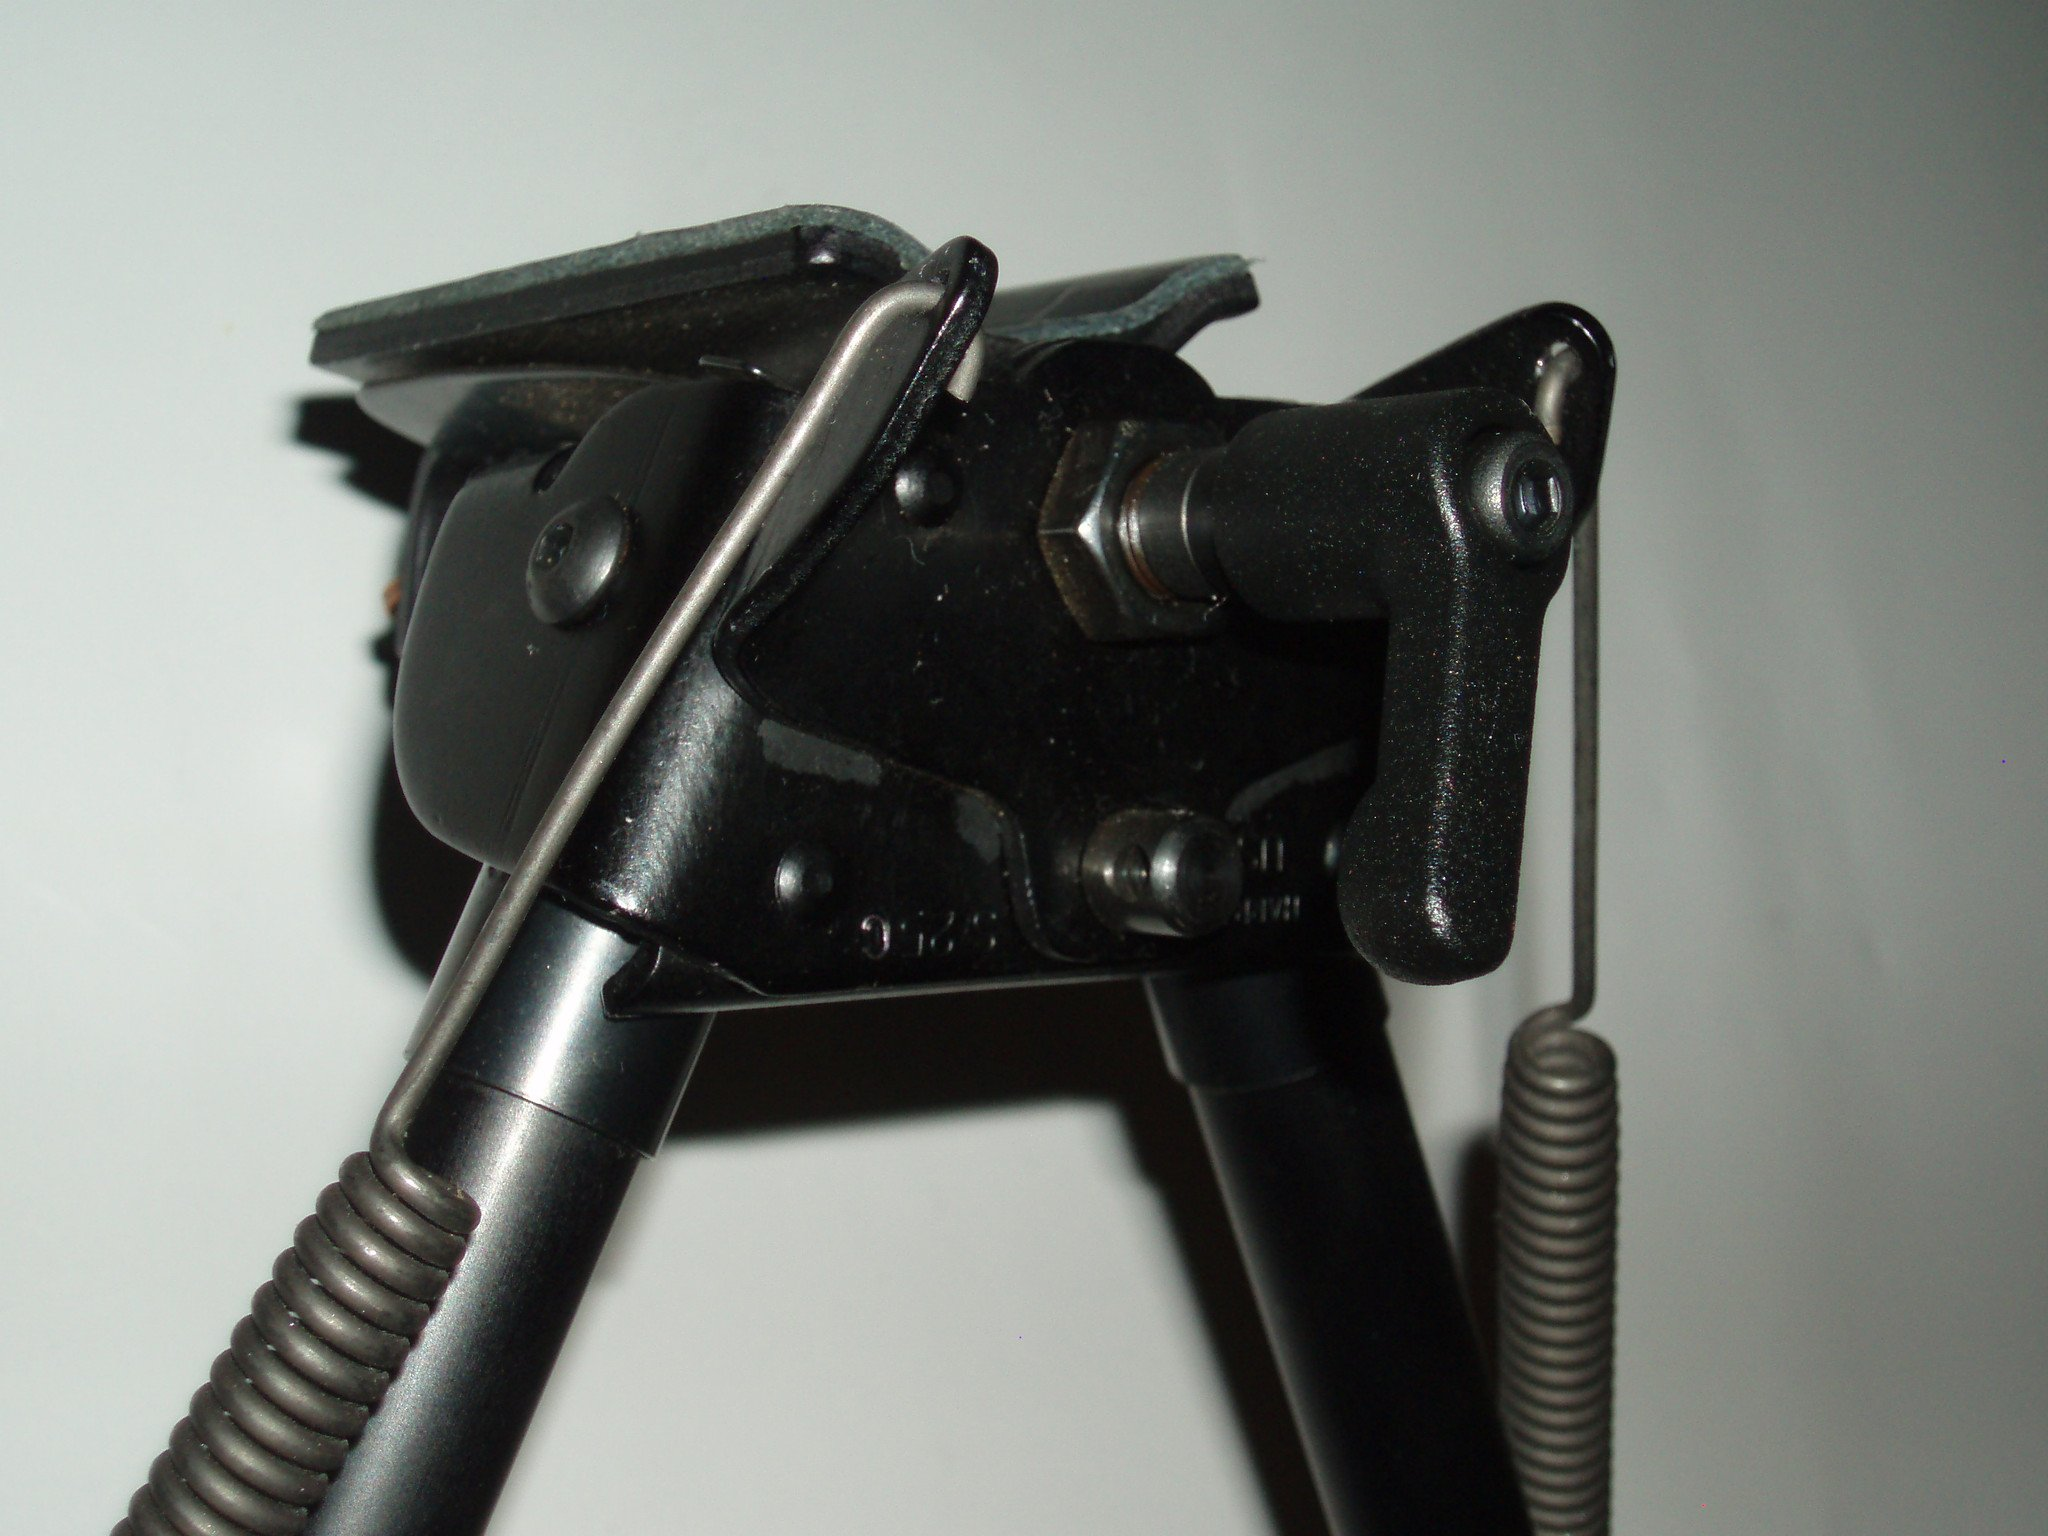 ATP Low Profile Locking Lever (Pod Lock) for Harris S Series Swivel Bipod - Australian Tactical Precision